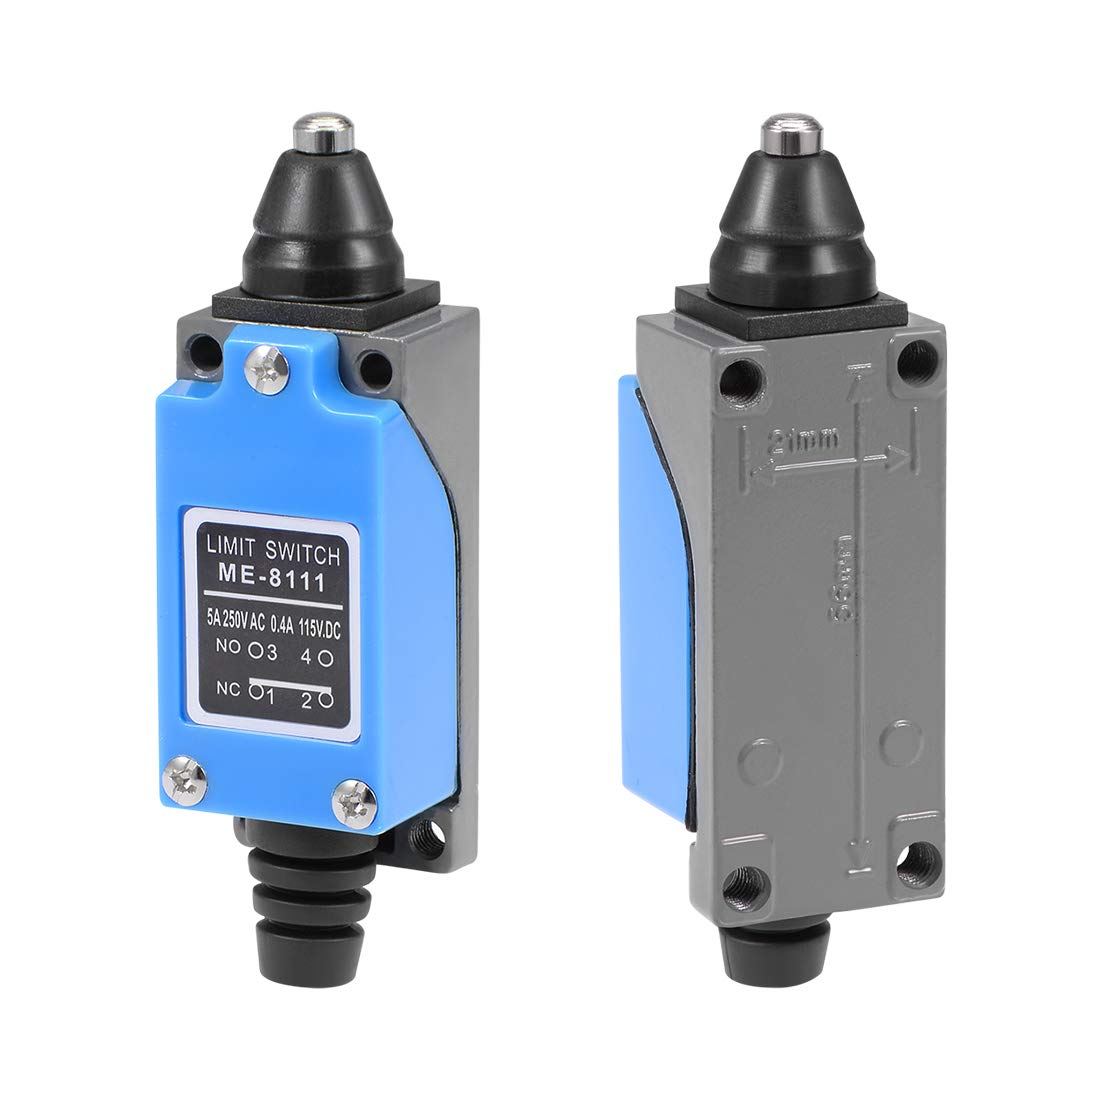 Electrical Buddy ME-8111 Plunger Momentary Limit Switch 1NC+1NO 2Pcs